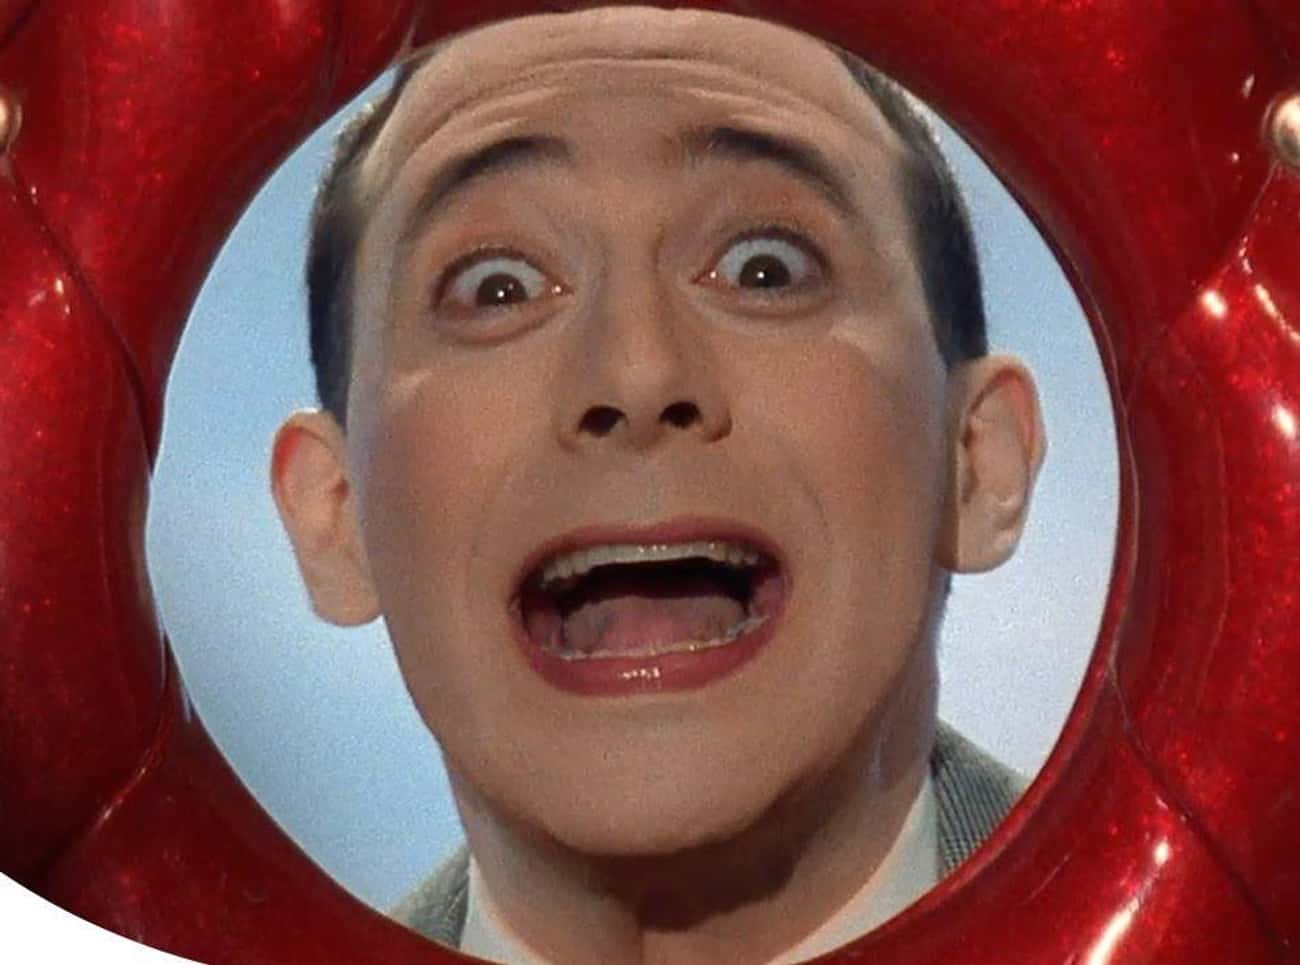 His First Job Was As A Gofer For 'Pee-Wee's Playhouse'